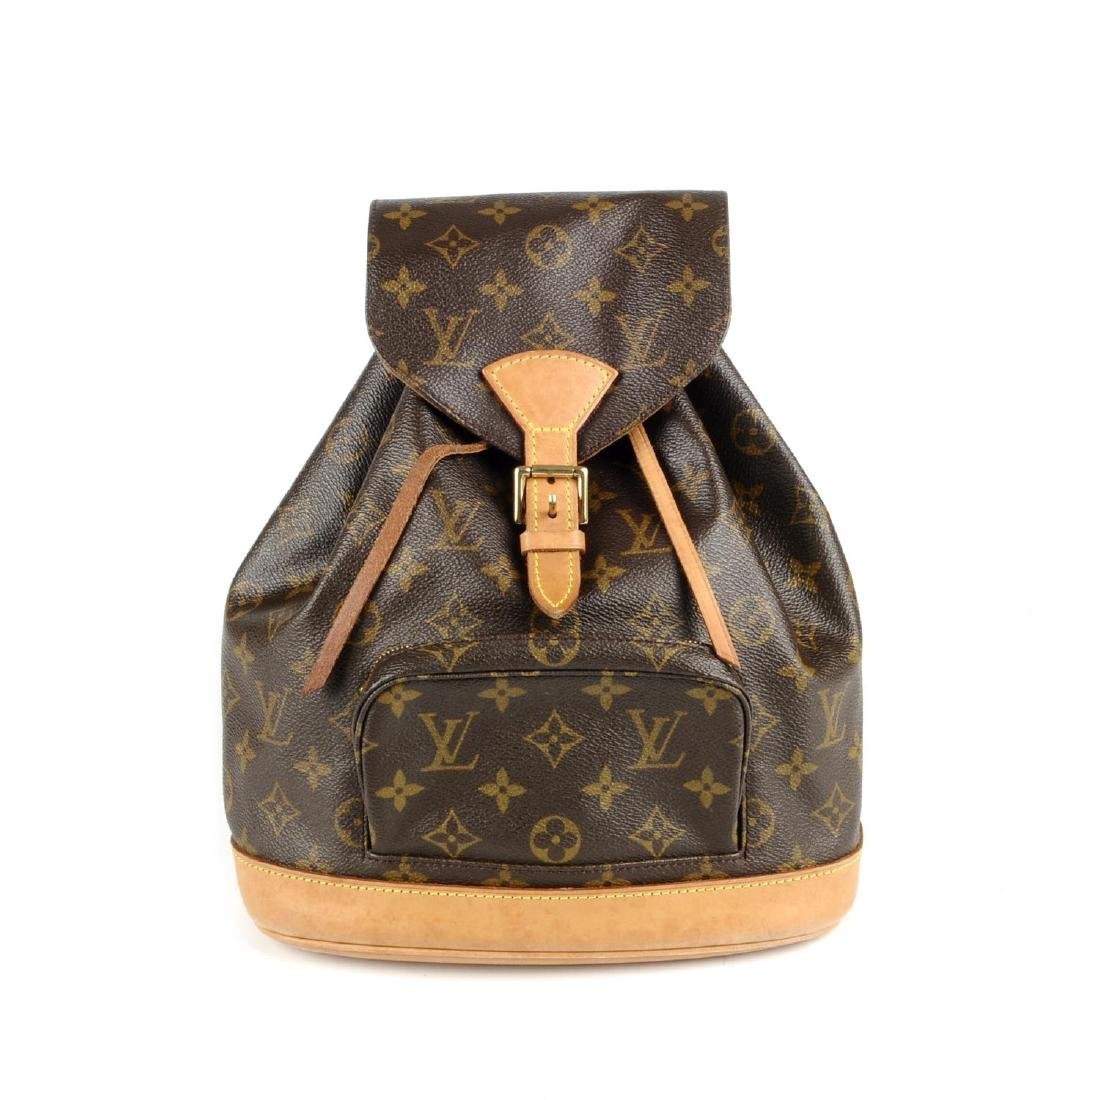 LOUIS VUITTON - a Monogram Montsouris MM backpack.